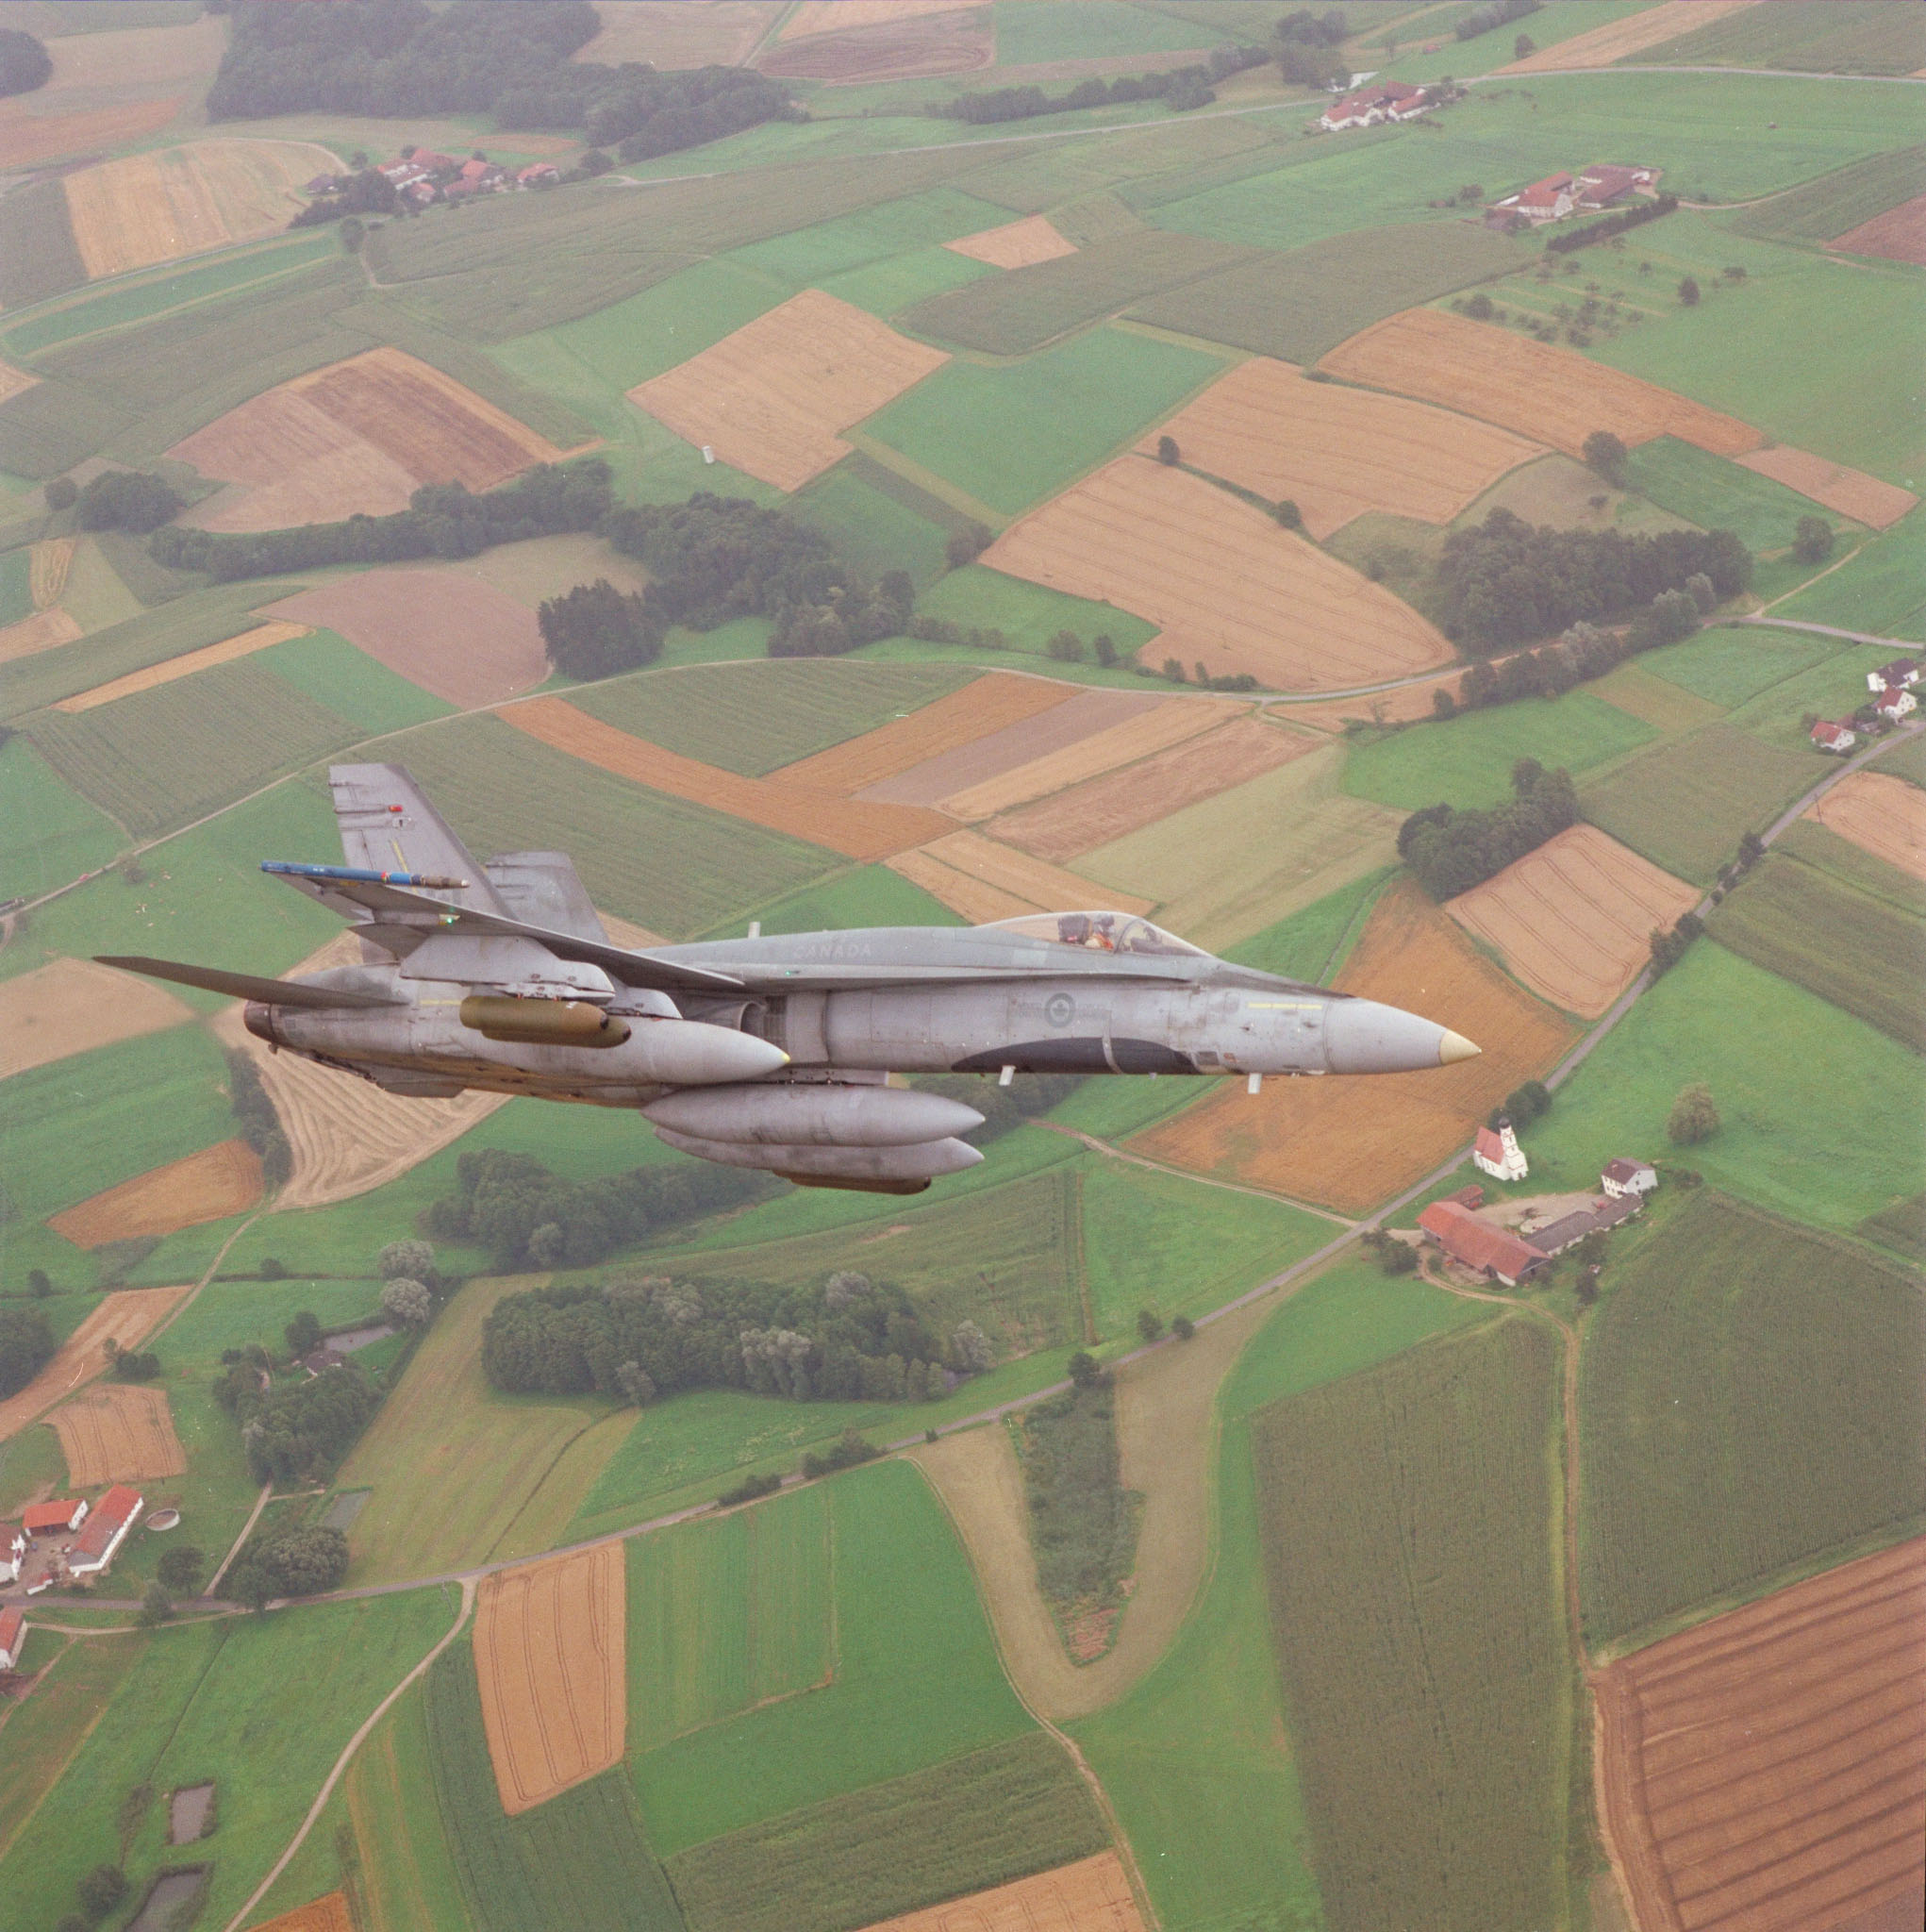 Flown by Captain Doug Stroud, a CF-188 fighter from 409 Tactical Fighter Squadron, located at Canadian Forces Base Baden, flies over Bavarian farmlands in Southern Germany. This photo probably dates from 1987. PHOTO: DND Archives, ISC87-489